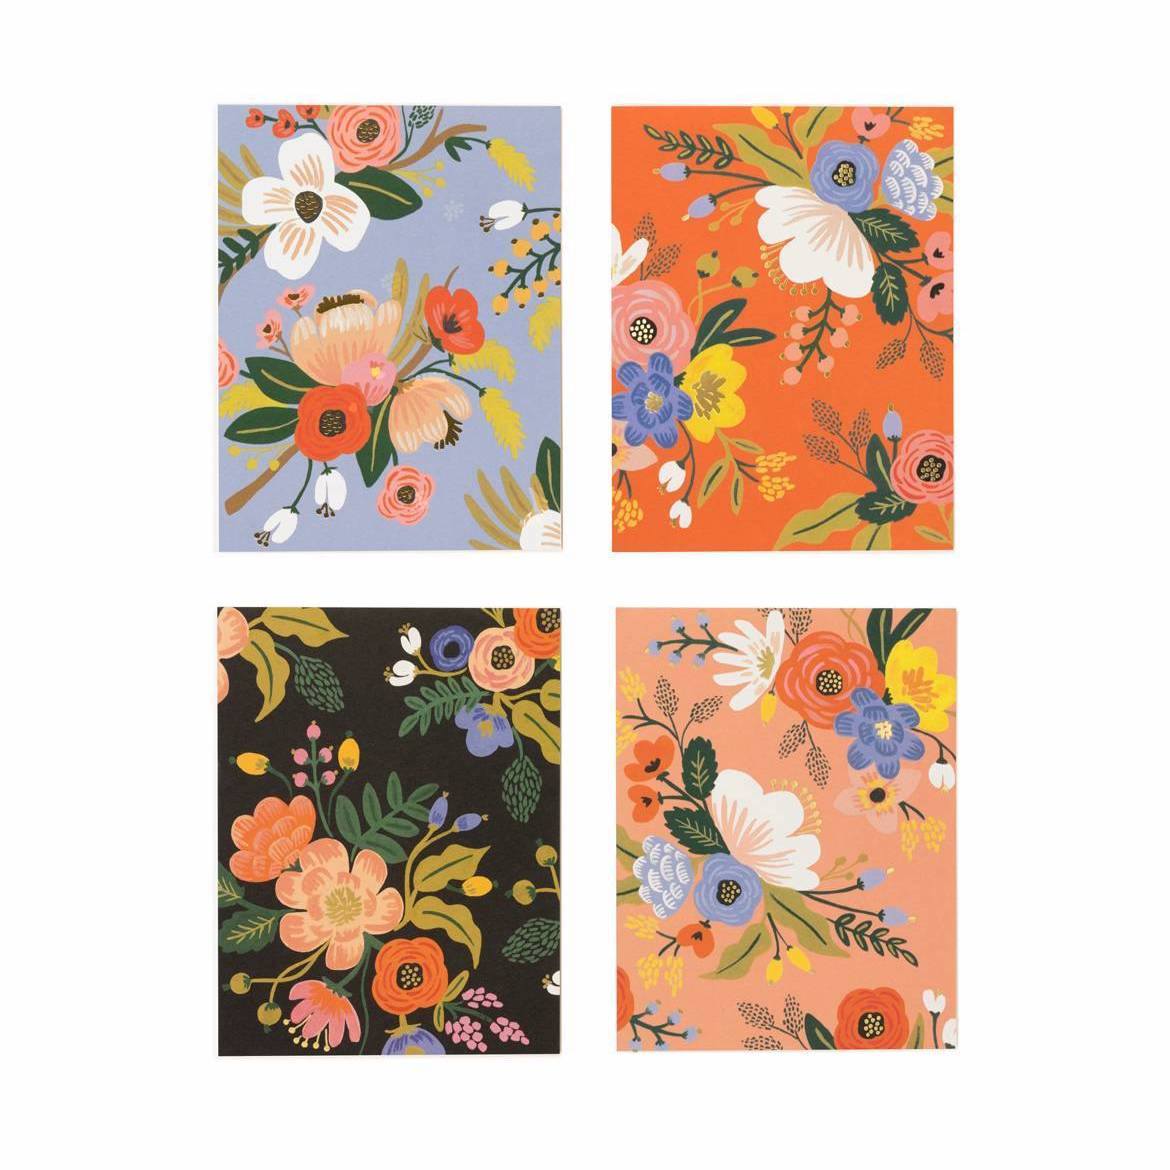 Lively Floral Card Set - Rifle Paper Co.